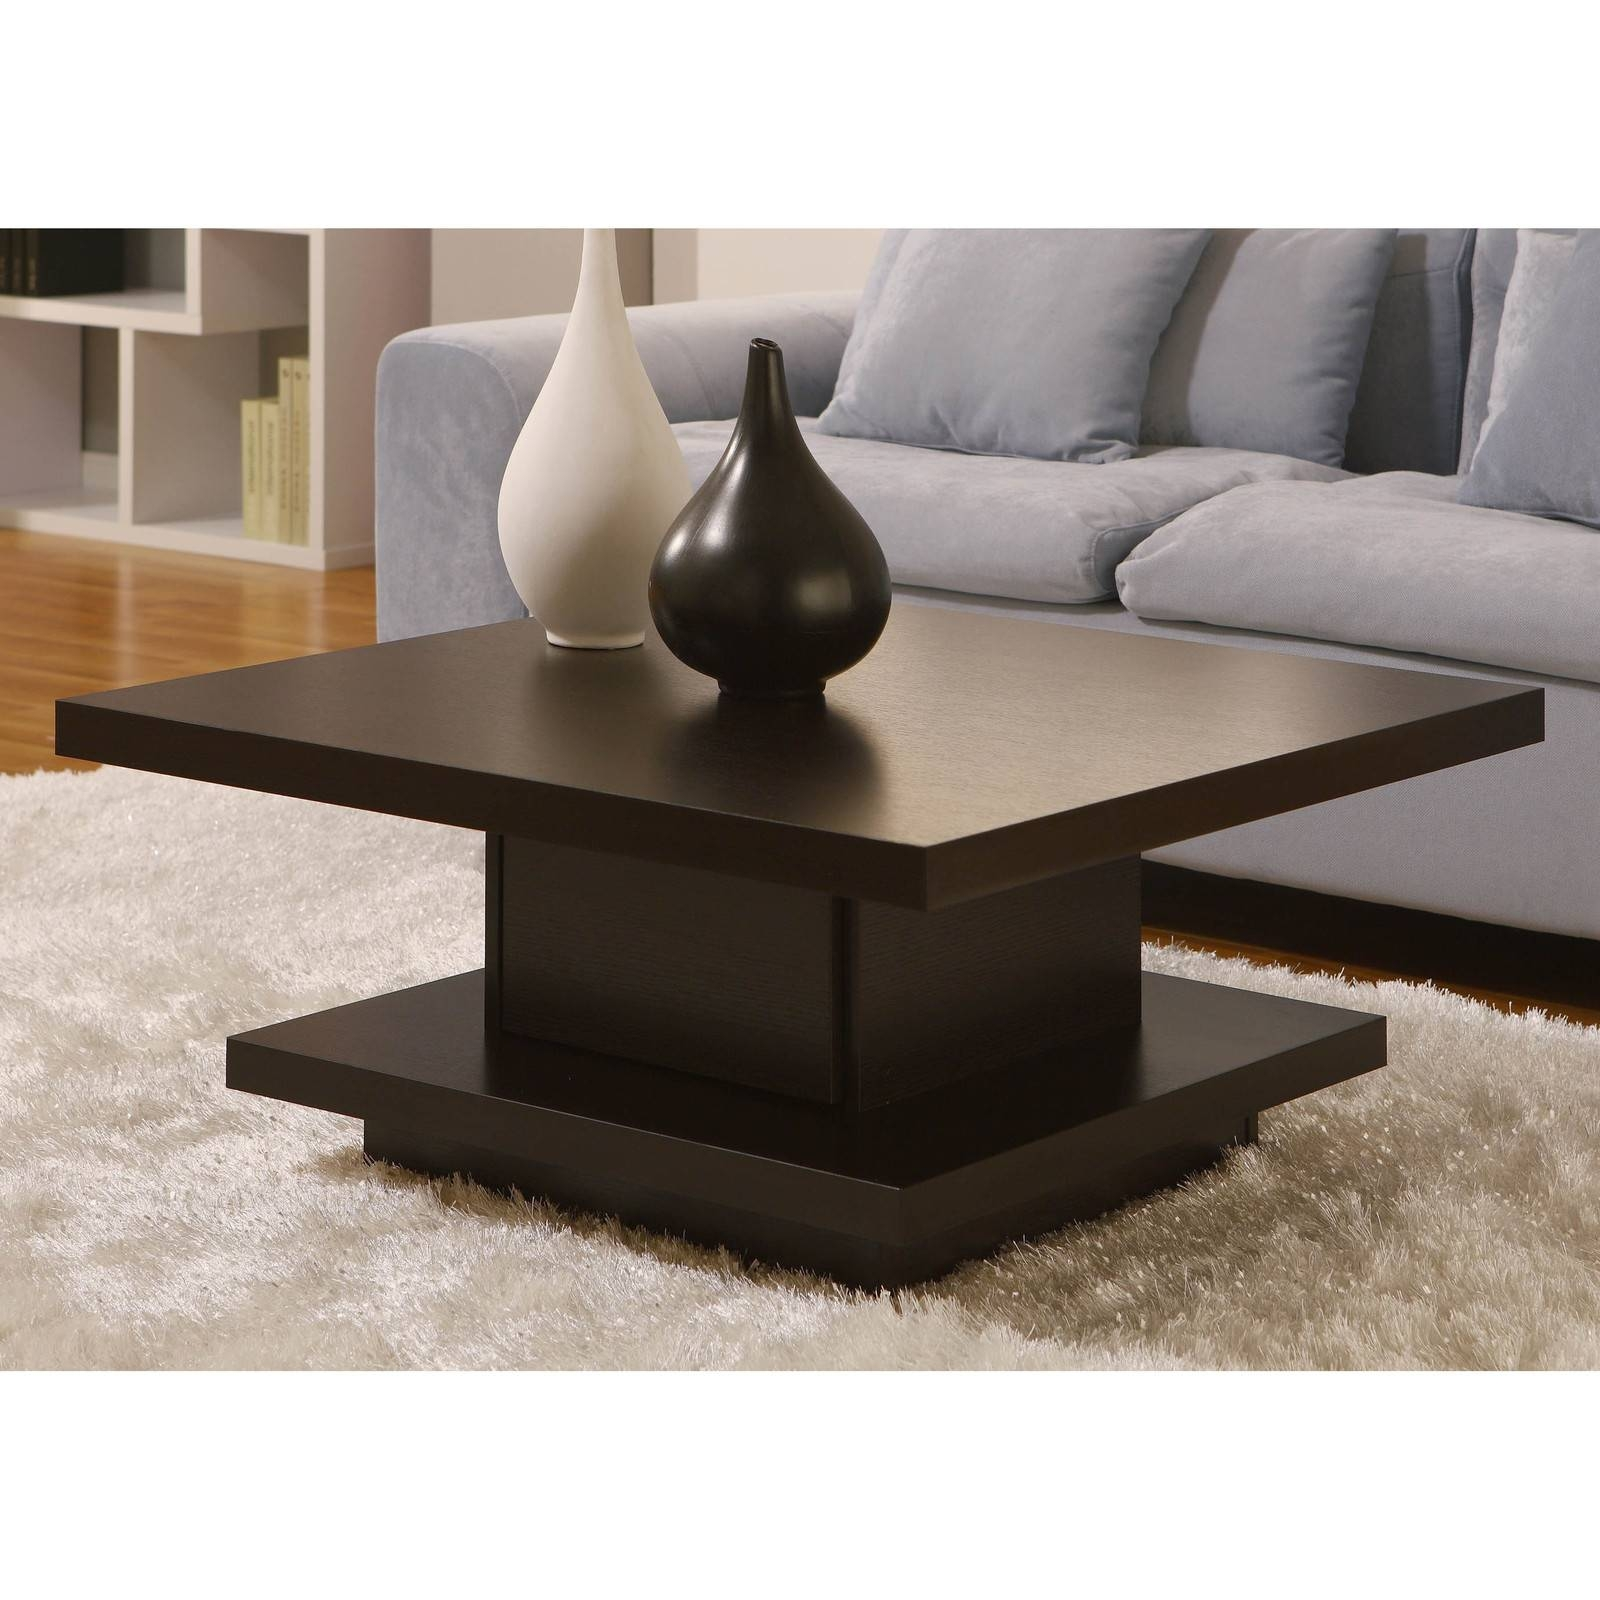 Laroche Square Coffee Table Contemporary Wooden Coffee Tables with regard to Wayfair Coffee Tables (Image 20 of 30)